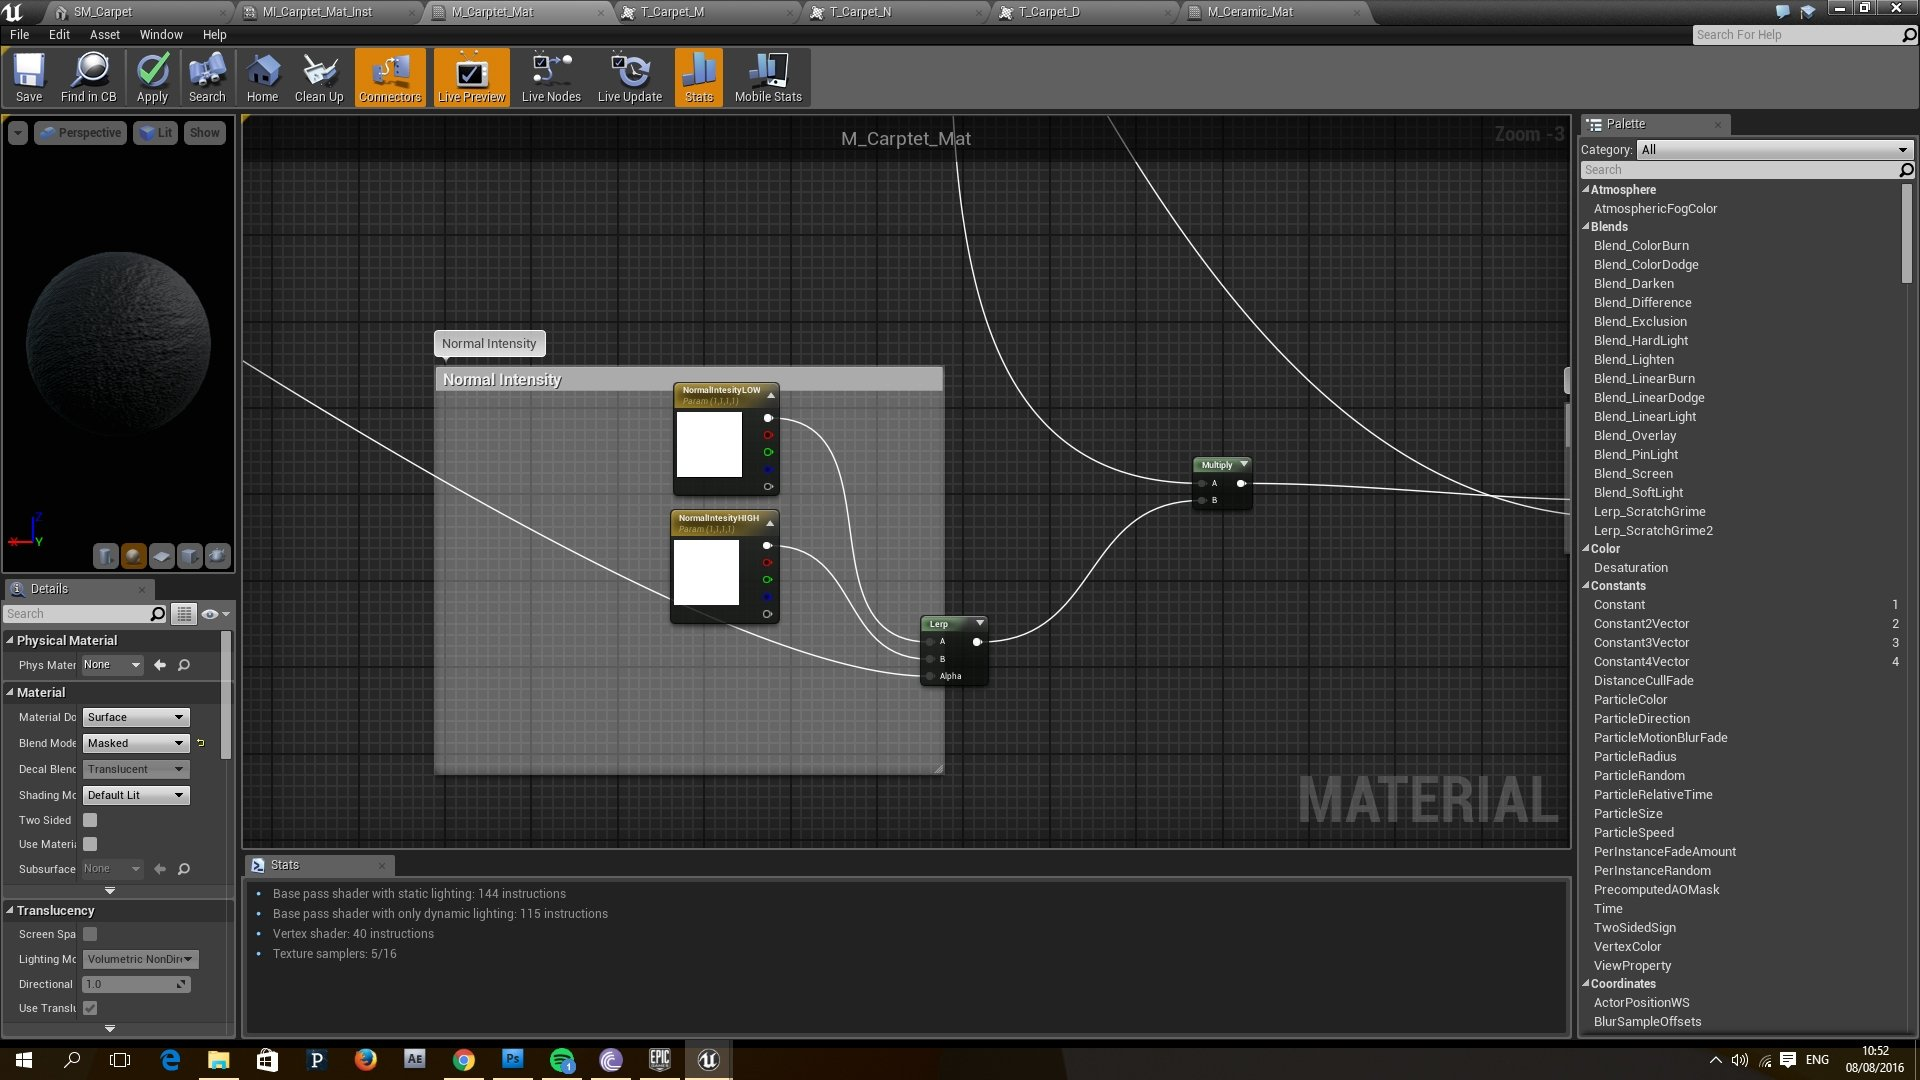 Anyone have more details on how to make a carpet in UE4